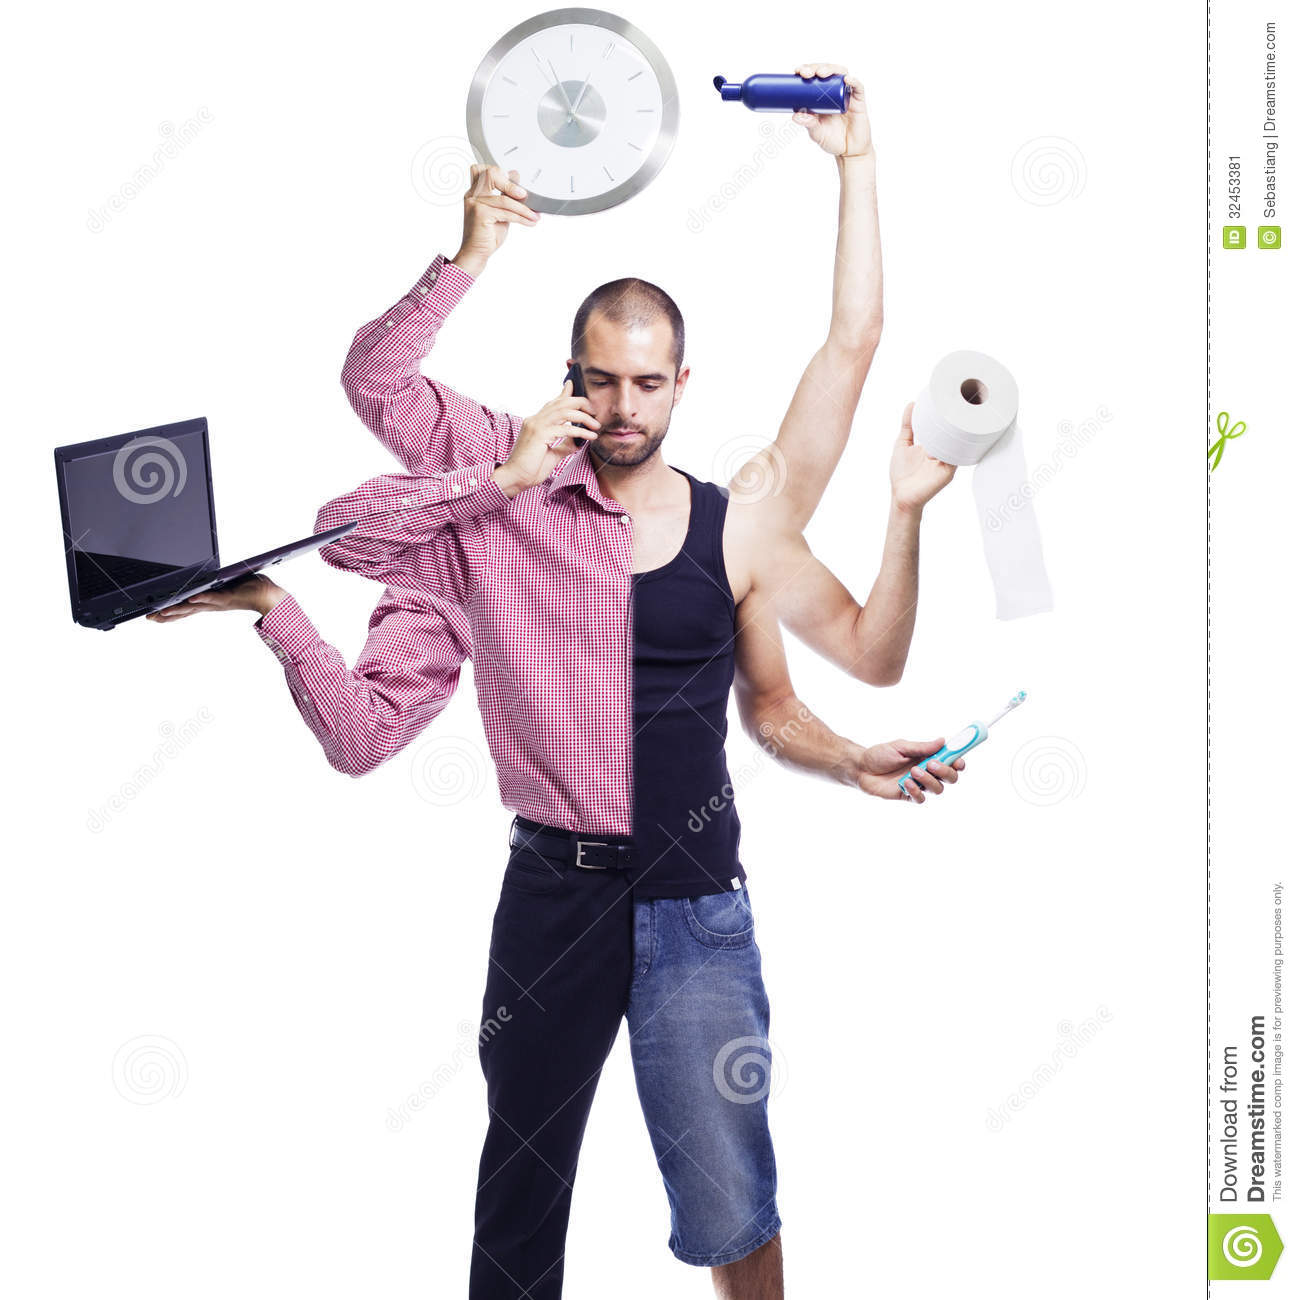 We Normally Sell Two A Day Today We Are Selling Up To 15: Multitasking Man Multiple Arms Stock Images